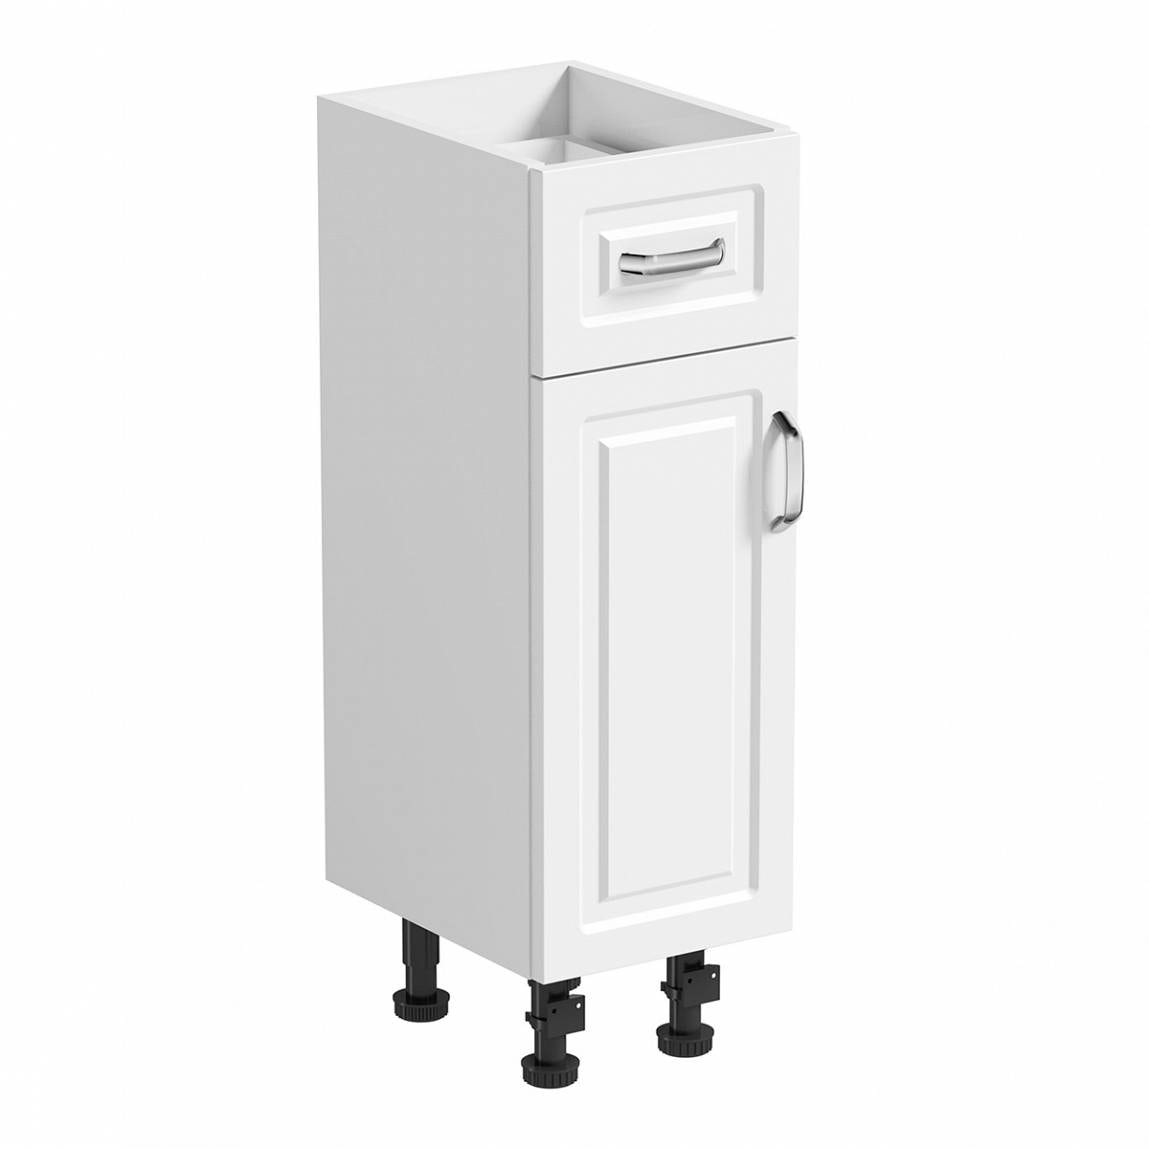 Orchard Florence white storage unit 250mm